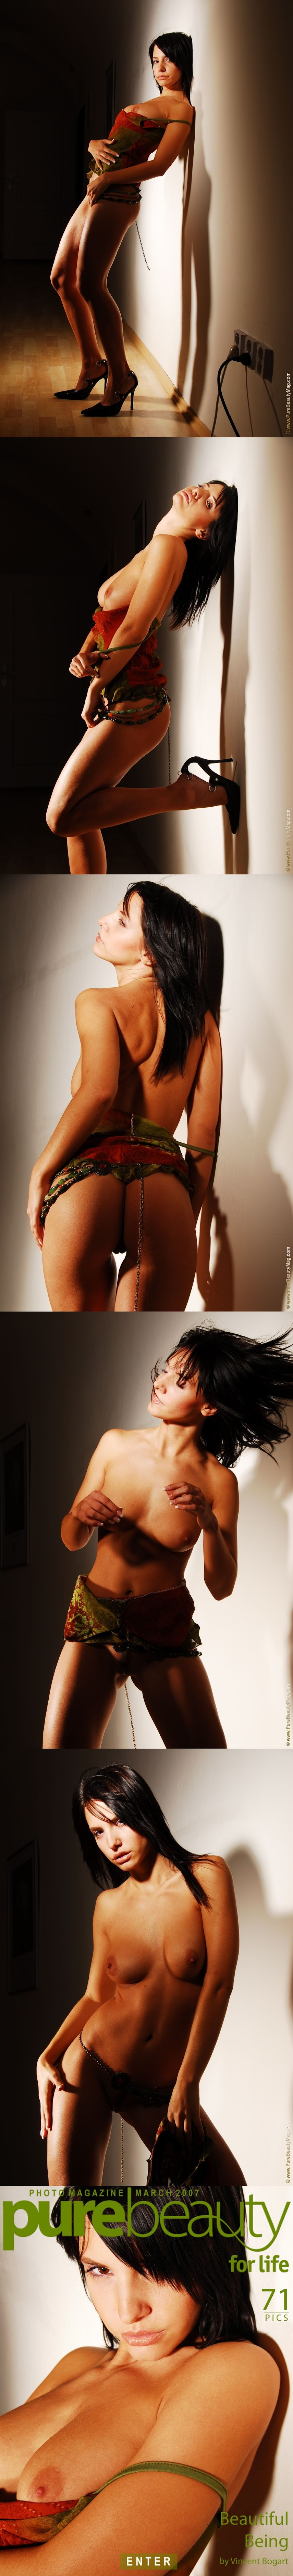 PureBeautyMag PBM  - 2007-03-19 - #s335188 - Vany - Take me higher - 3008pxReal Street Angels